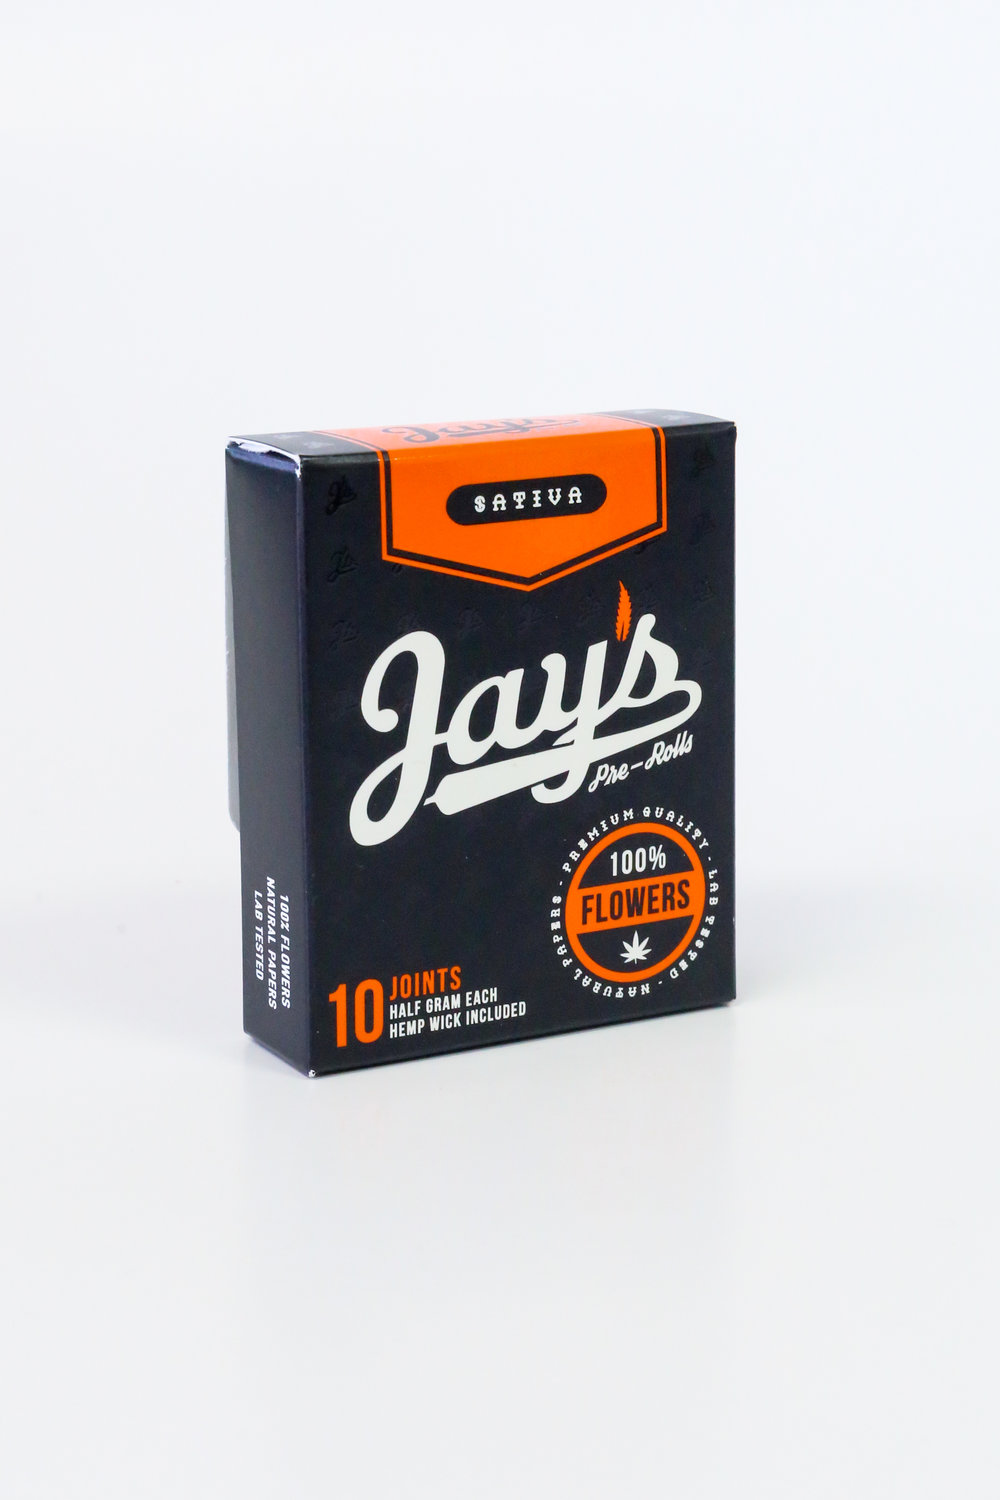 Jay's Sativa Pre-Roll Cannabis Packaging